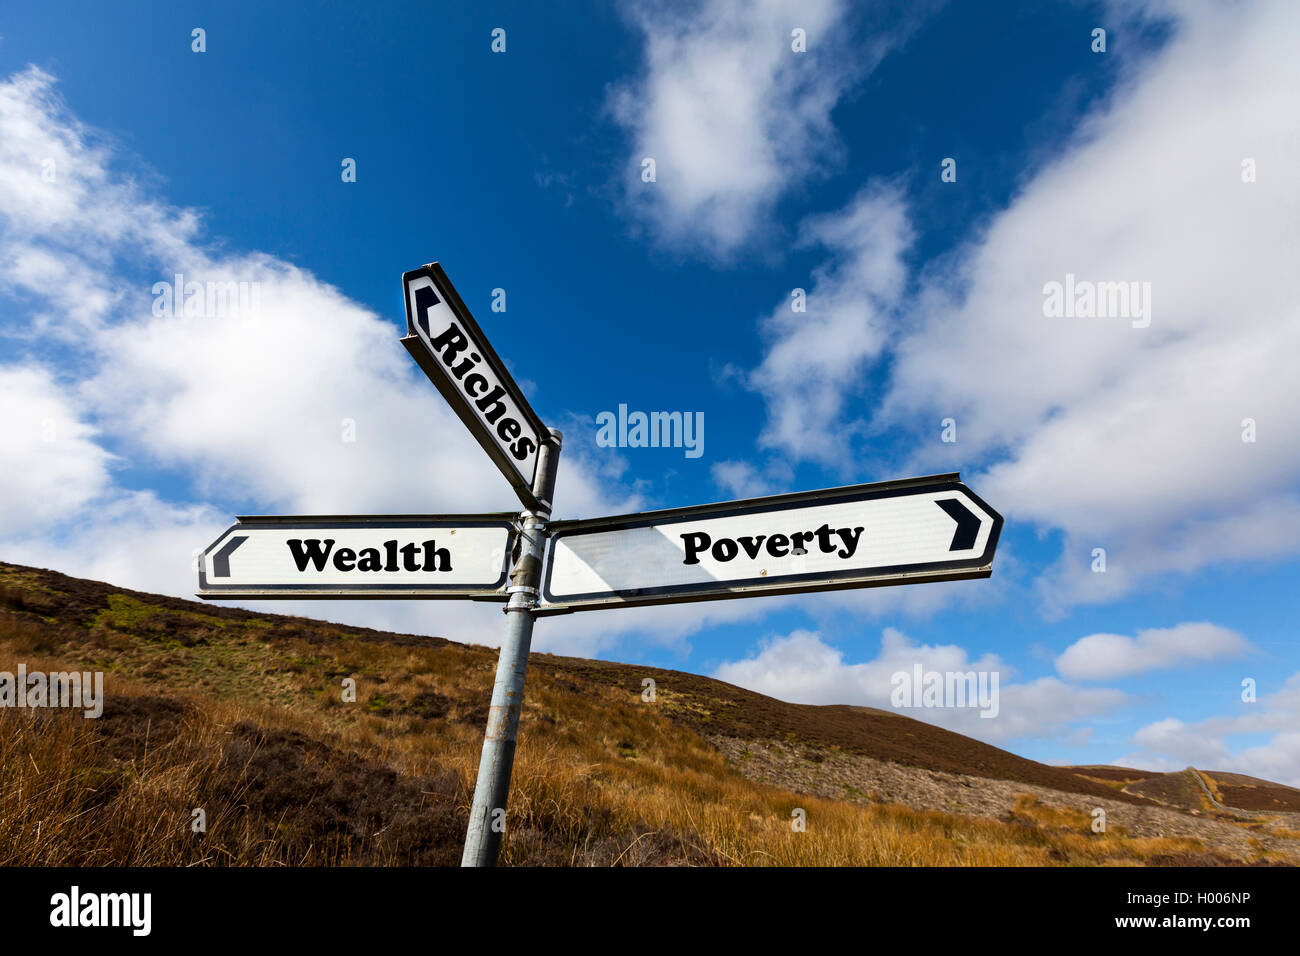 Poverty wealth riches money lifestyle concept road sign choice choose life direction future concepts signs - Stock Image